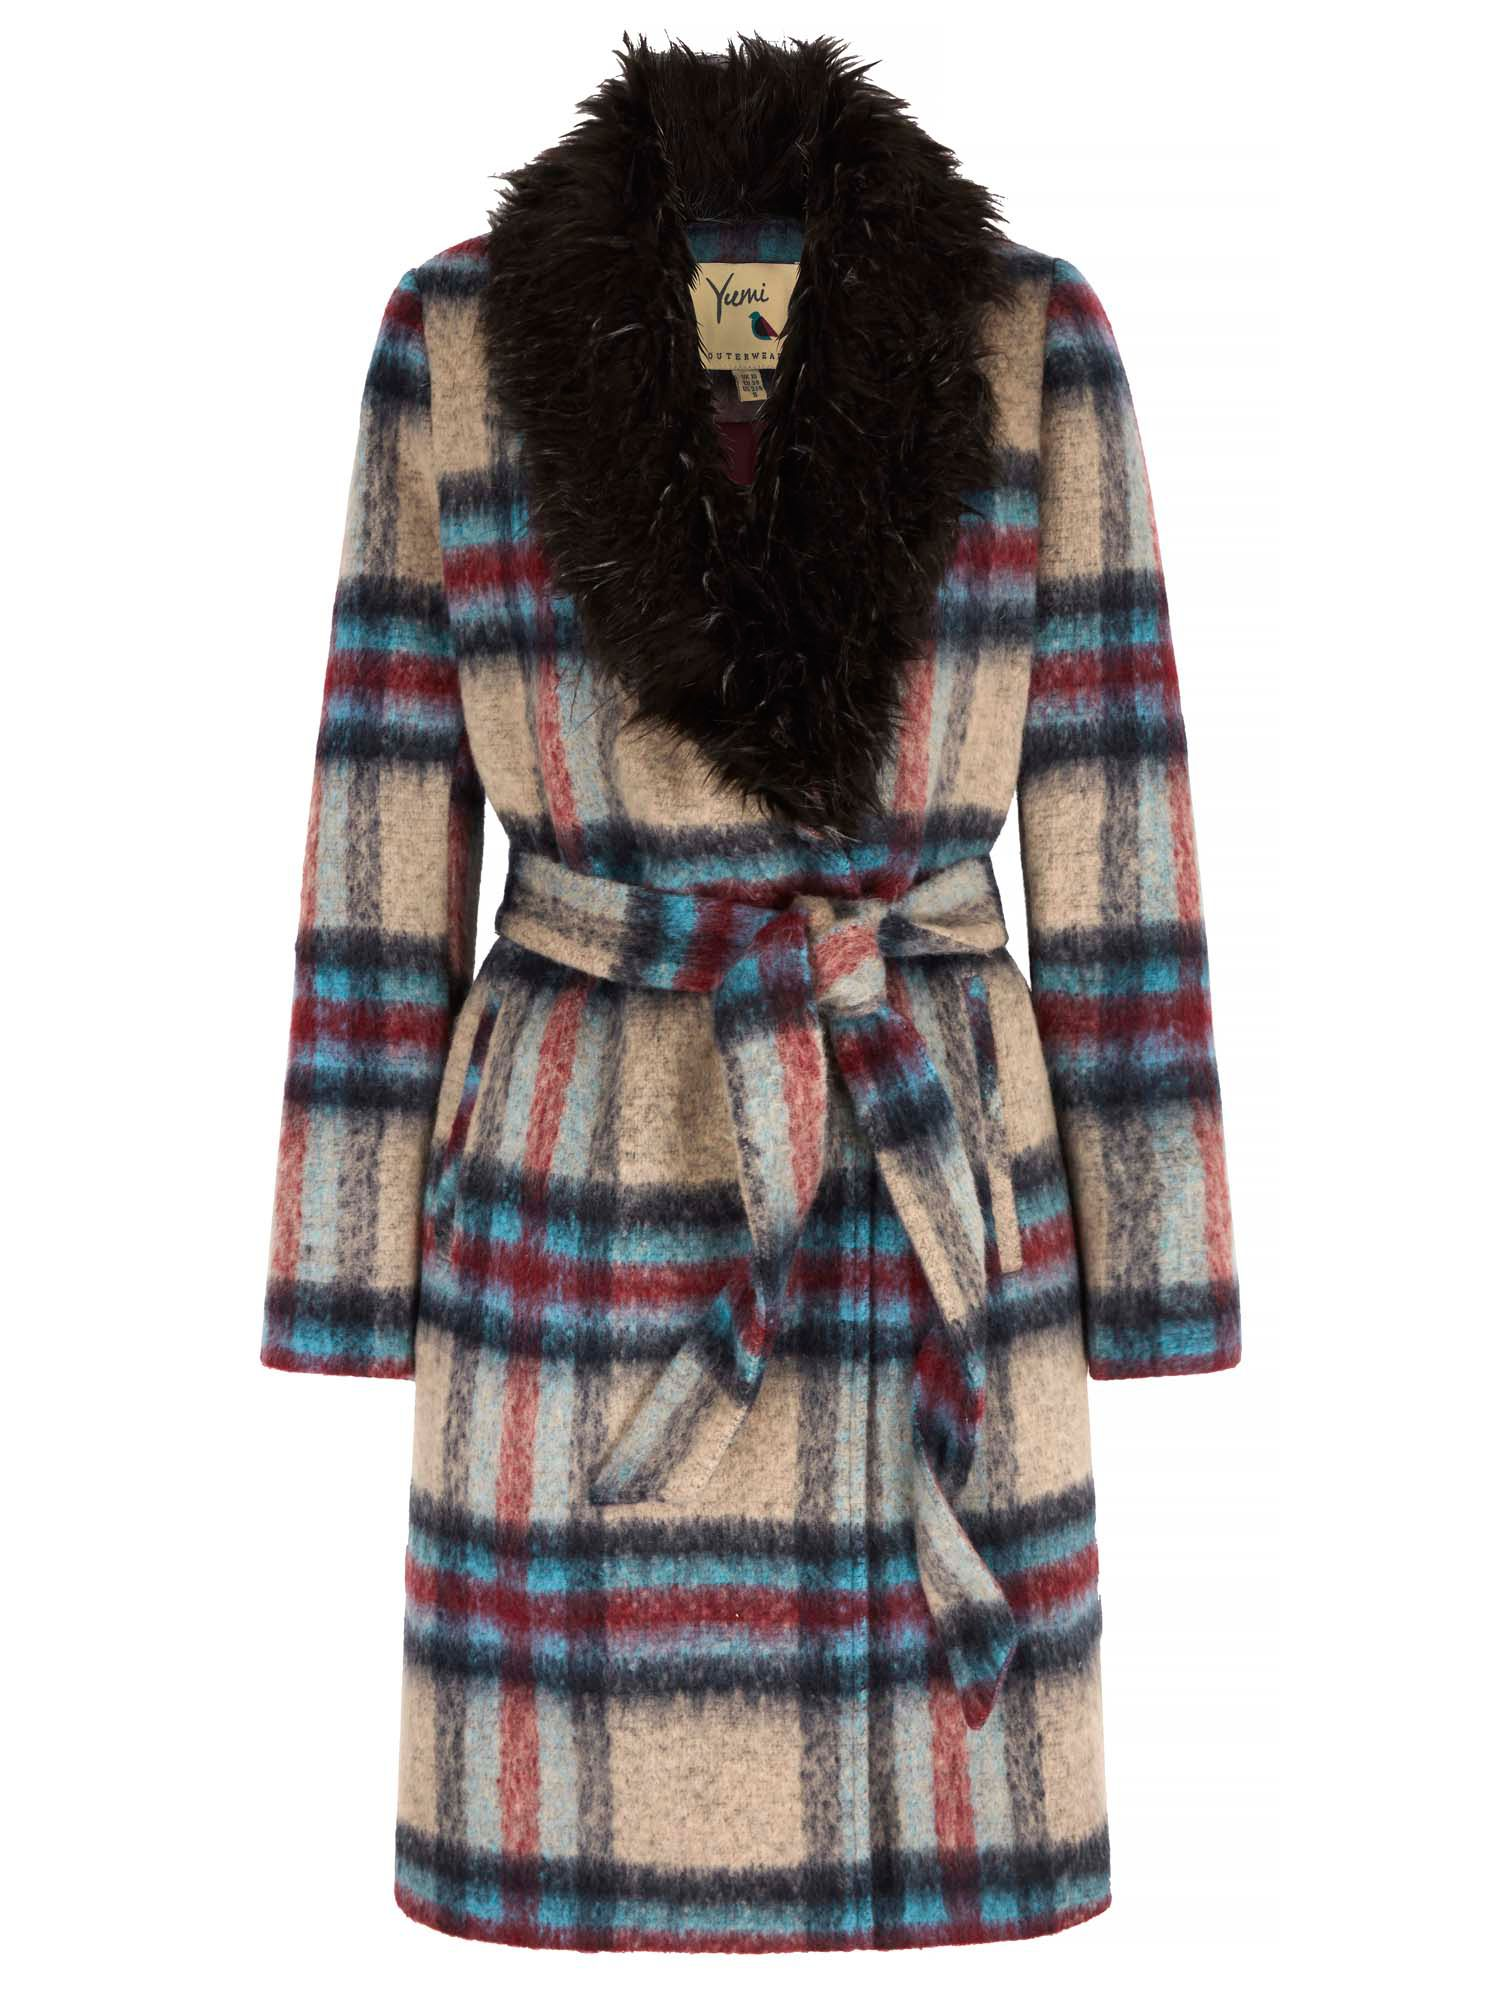 Retro Vintage Style Coats, Jackets, Fur Stoles Yumi Check Faux Fur Collared Wrap Coat Multi-Coloured £60.00 AT vintagedancer.com